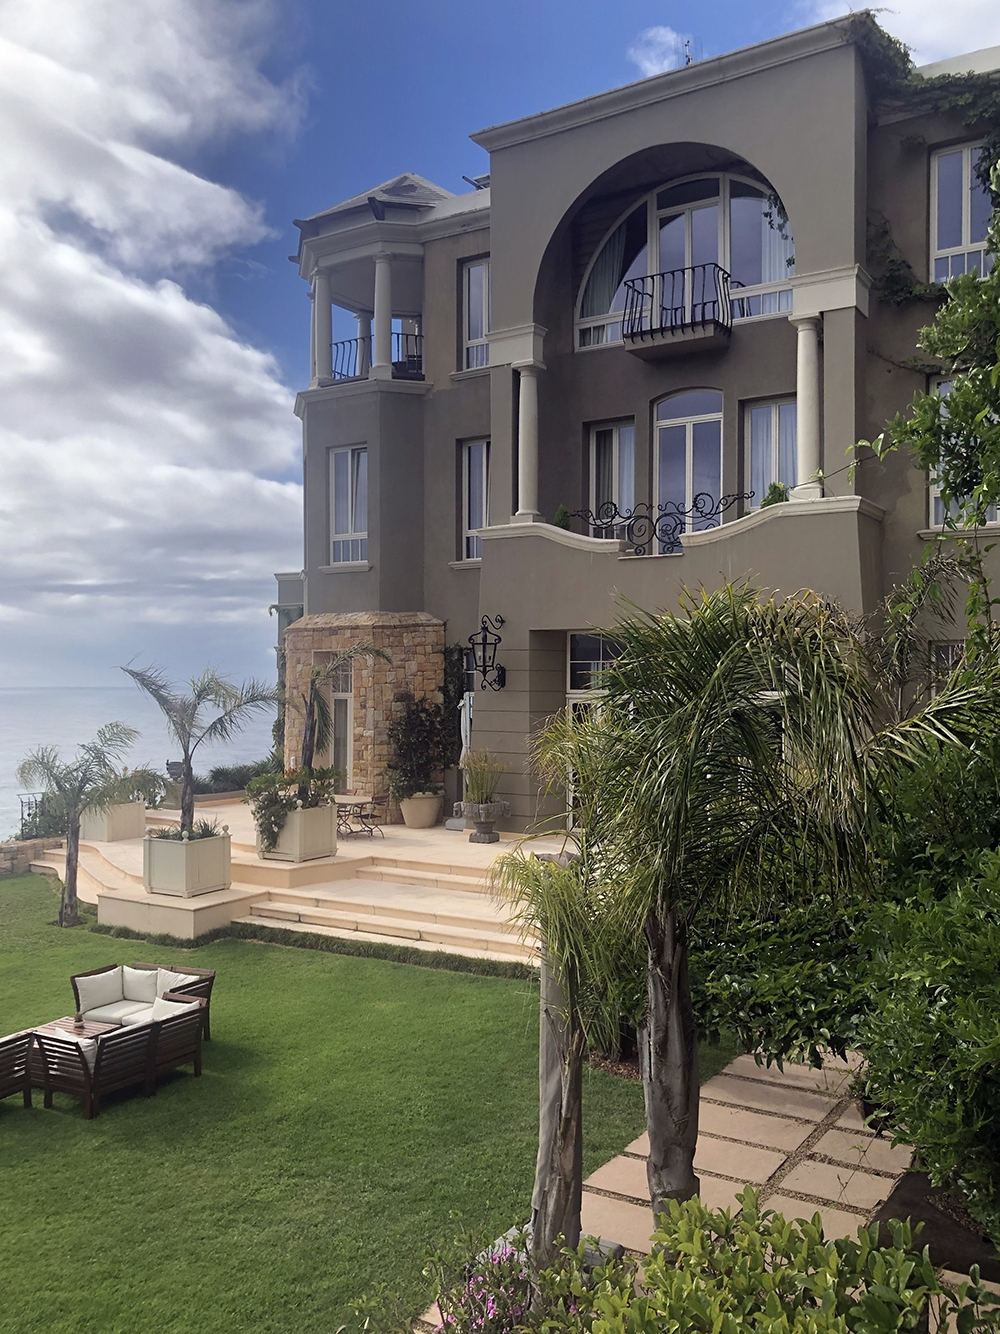 First Green Key Boutique Hotel in South Africa